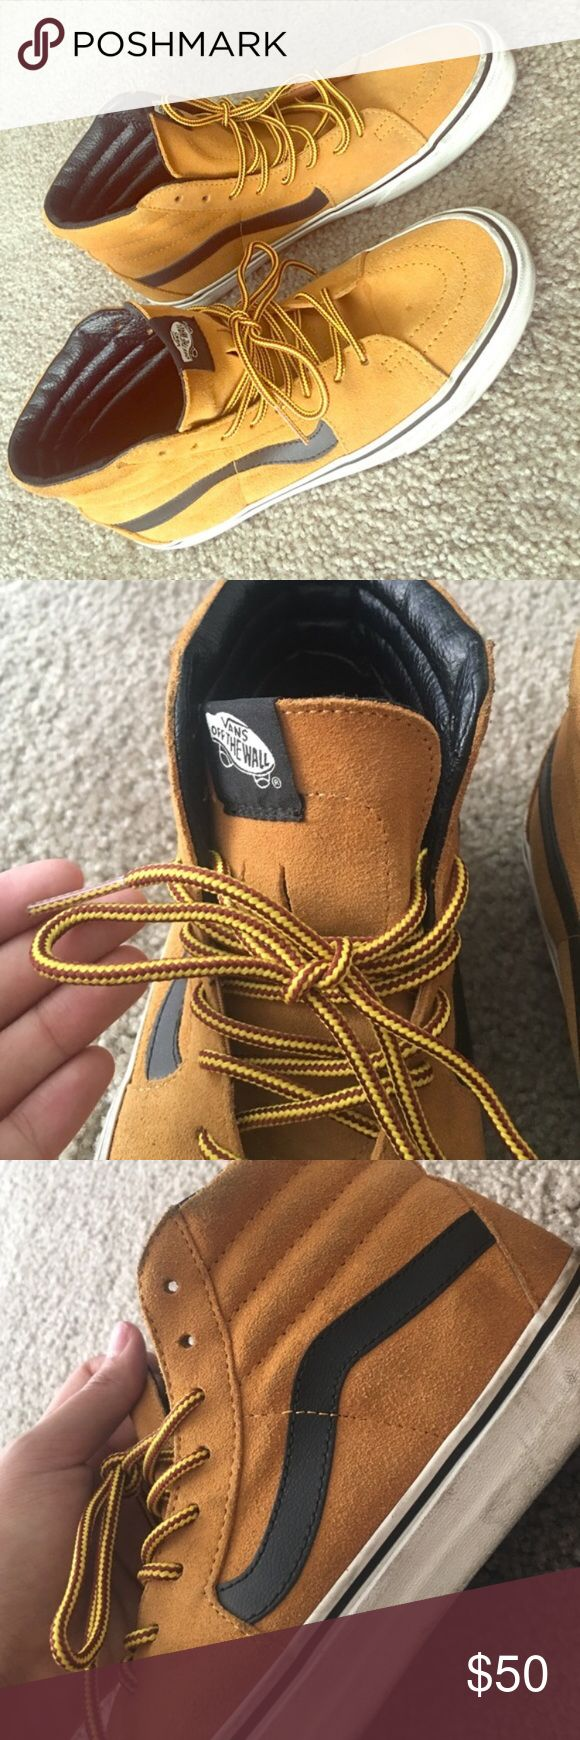 Vans Hi Suede  Very nice shoes. Selling only because I have too many items. Size 8.5 in men's and 10 in women's. Ask for more details. Also see my other listings. Everything's cheap! :) Vans Shoes Sneakers